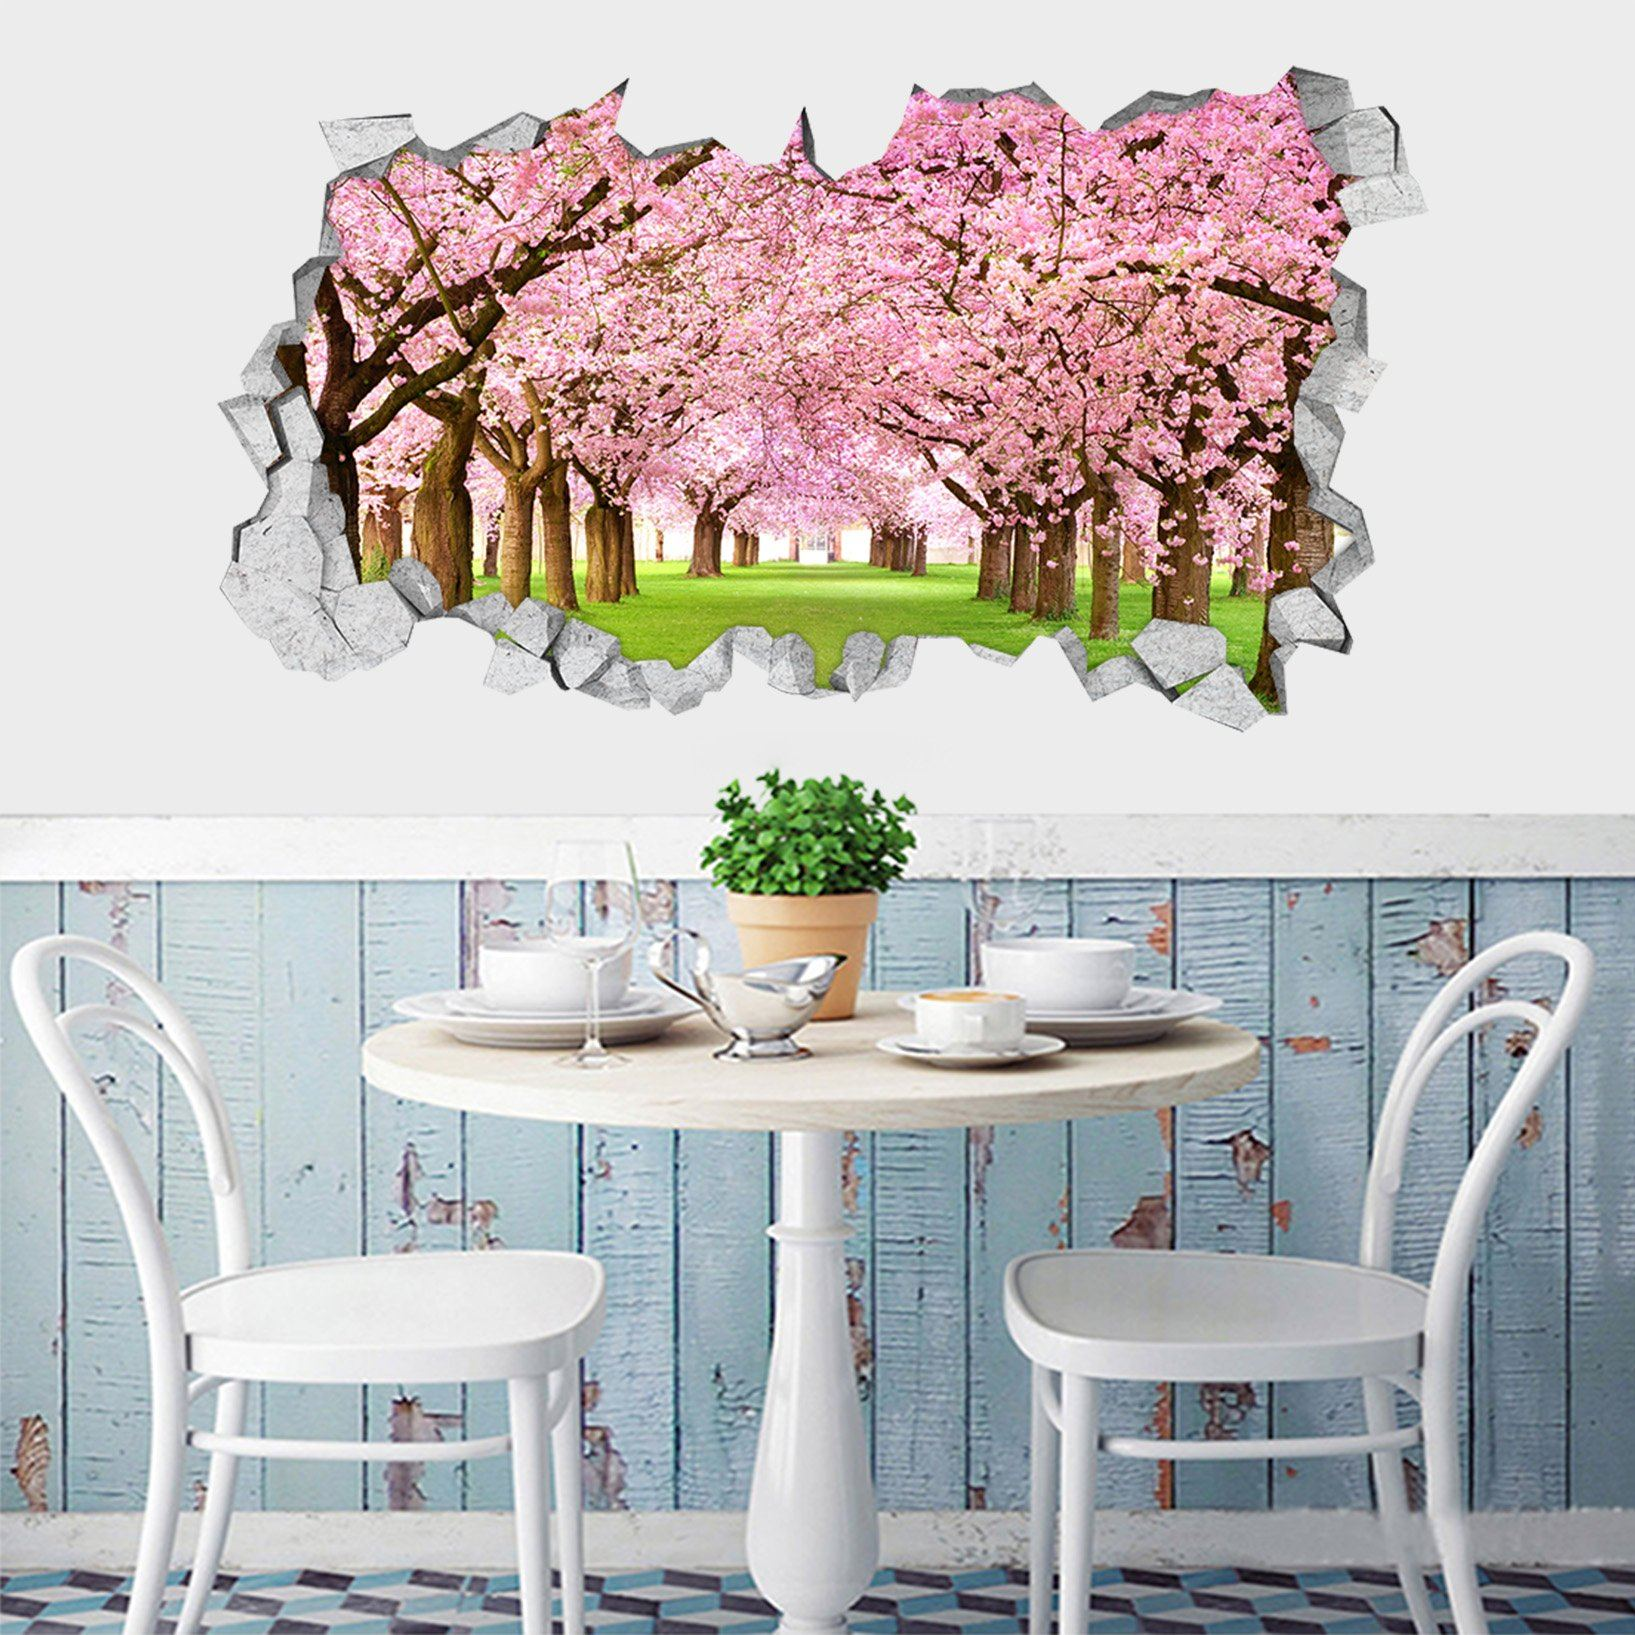 3D Flowering Trees 126 Broken Wall Murals Wallpaper AJ Wallpaper